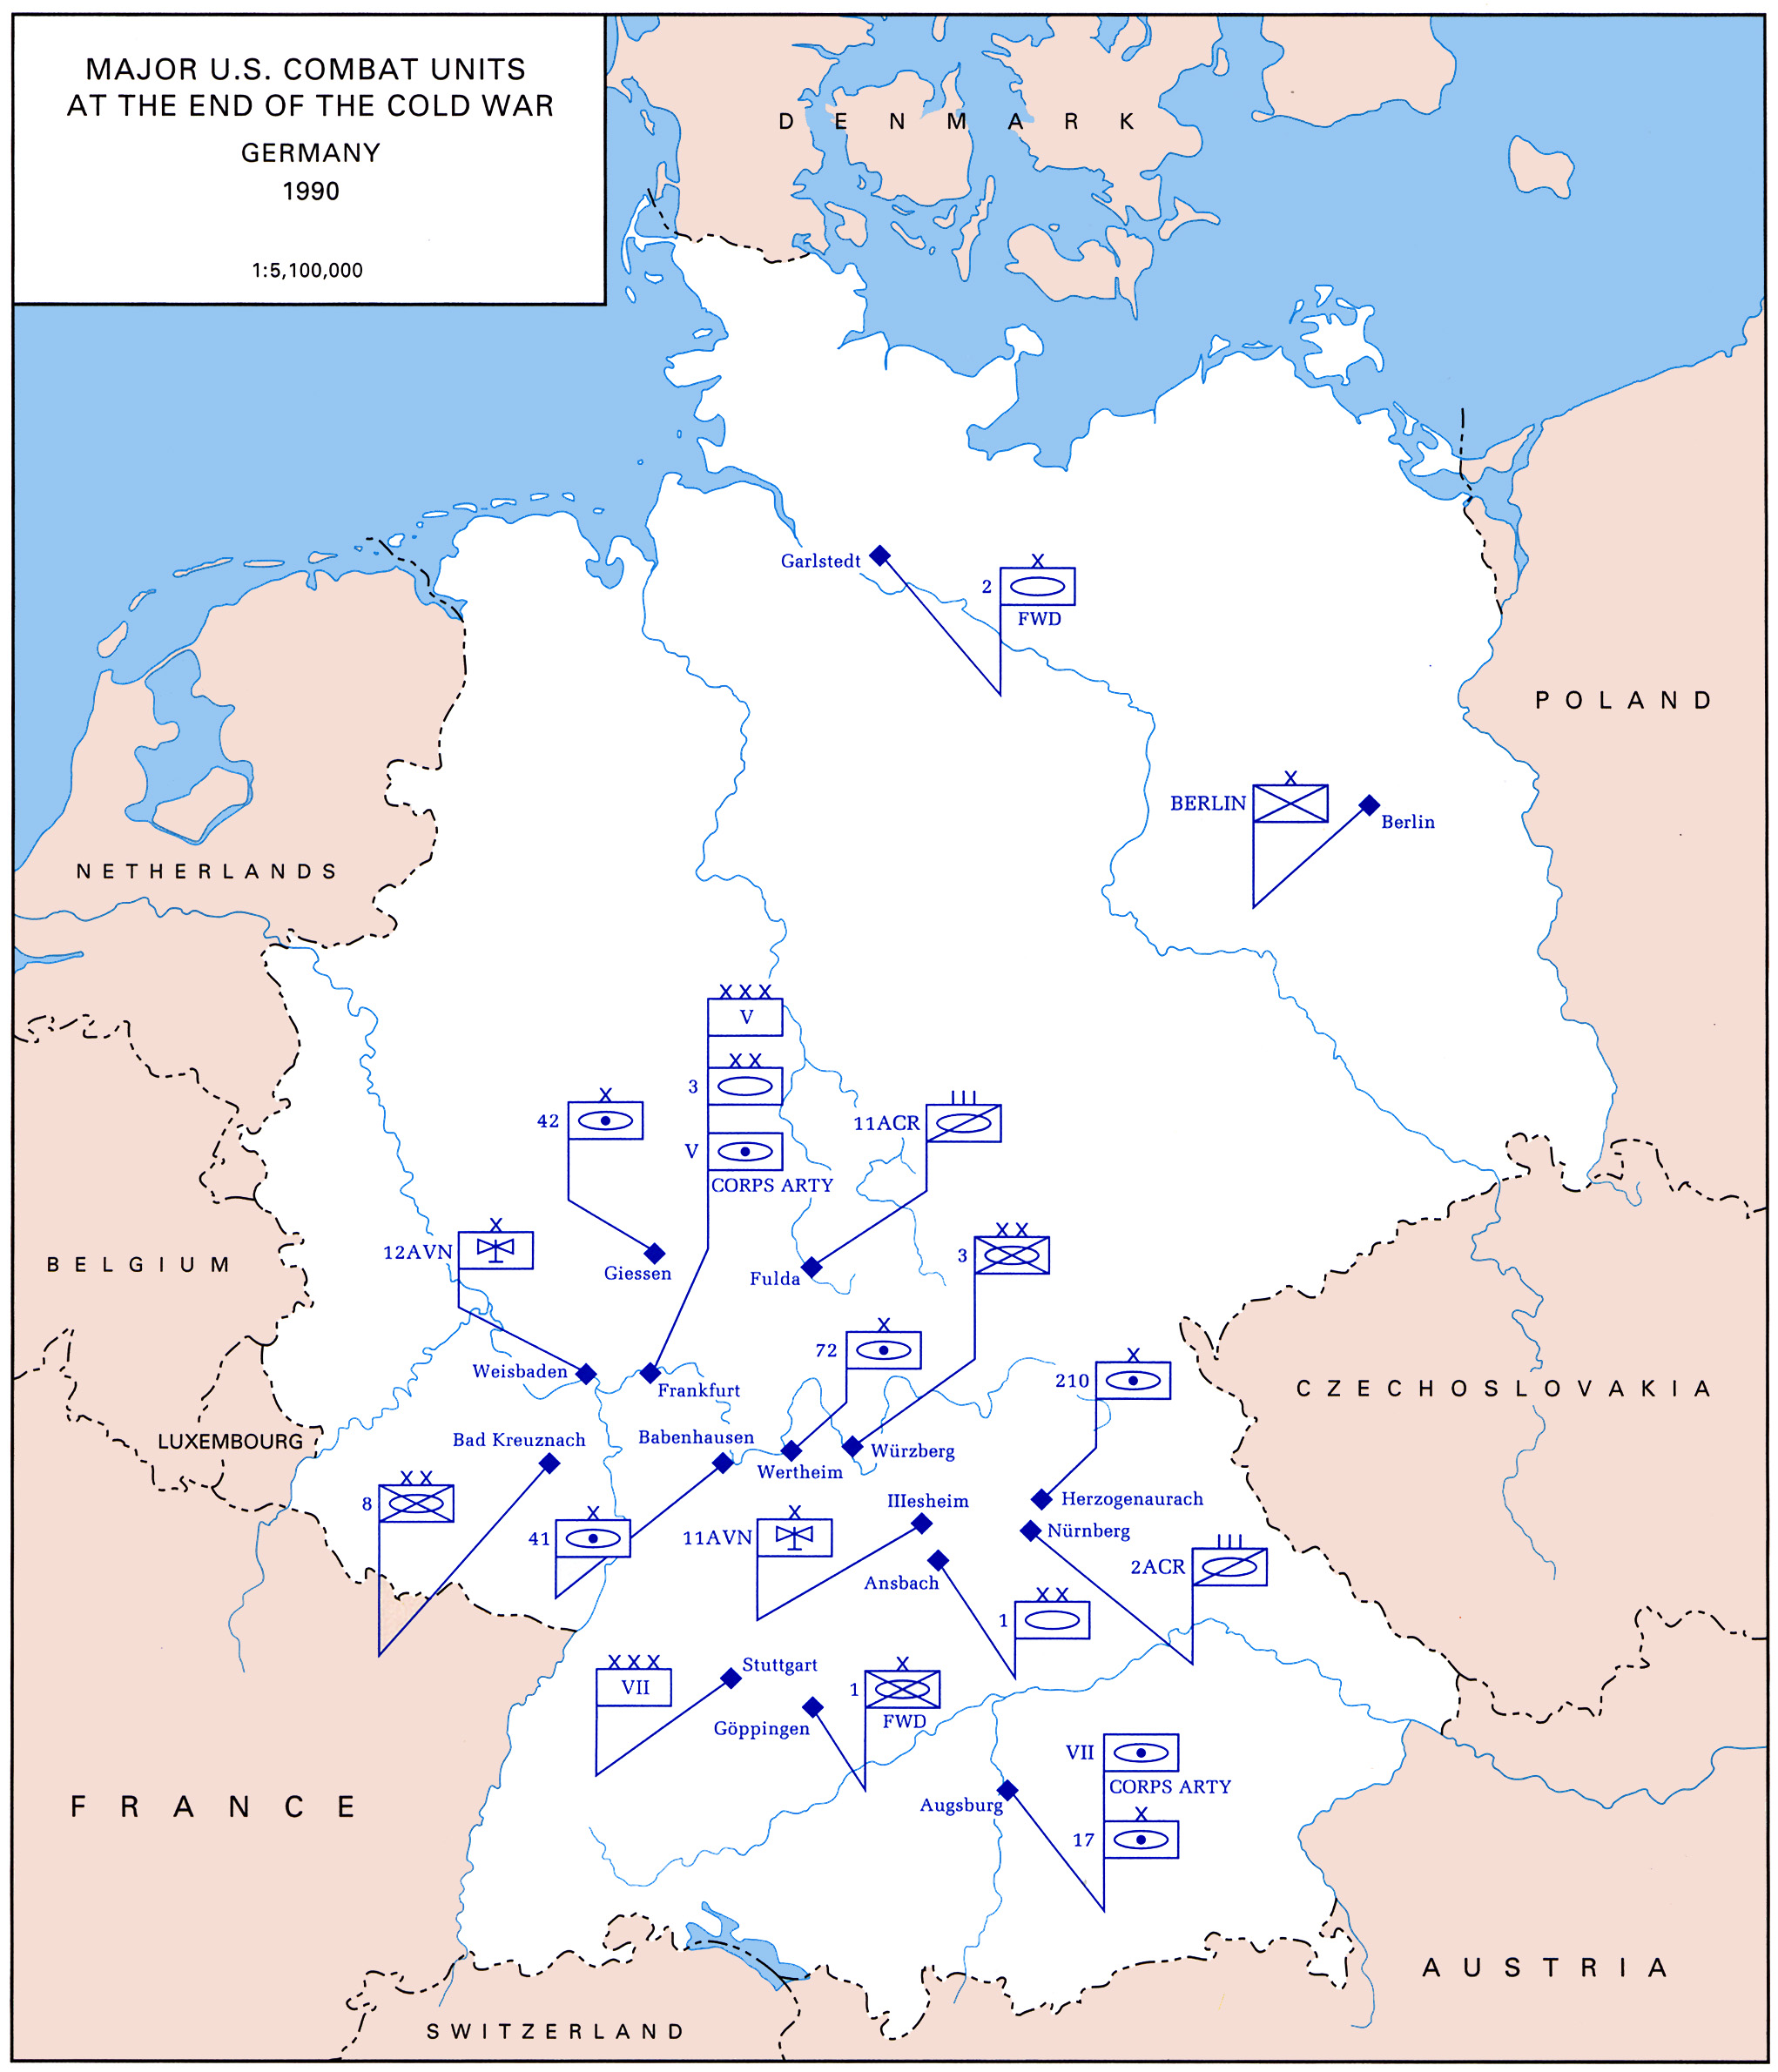 filemajor us combat units at the end of the cold war